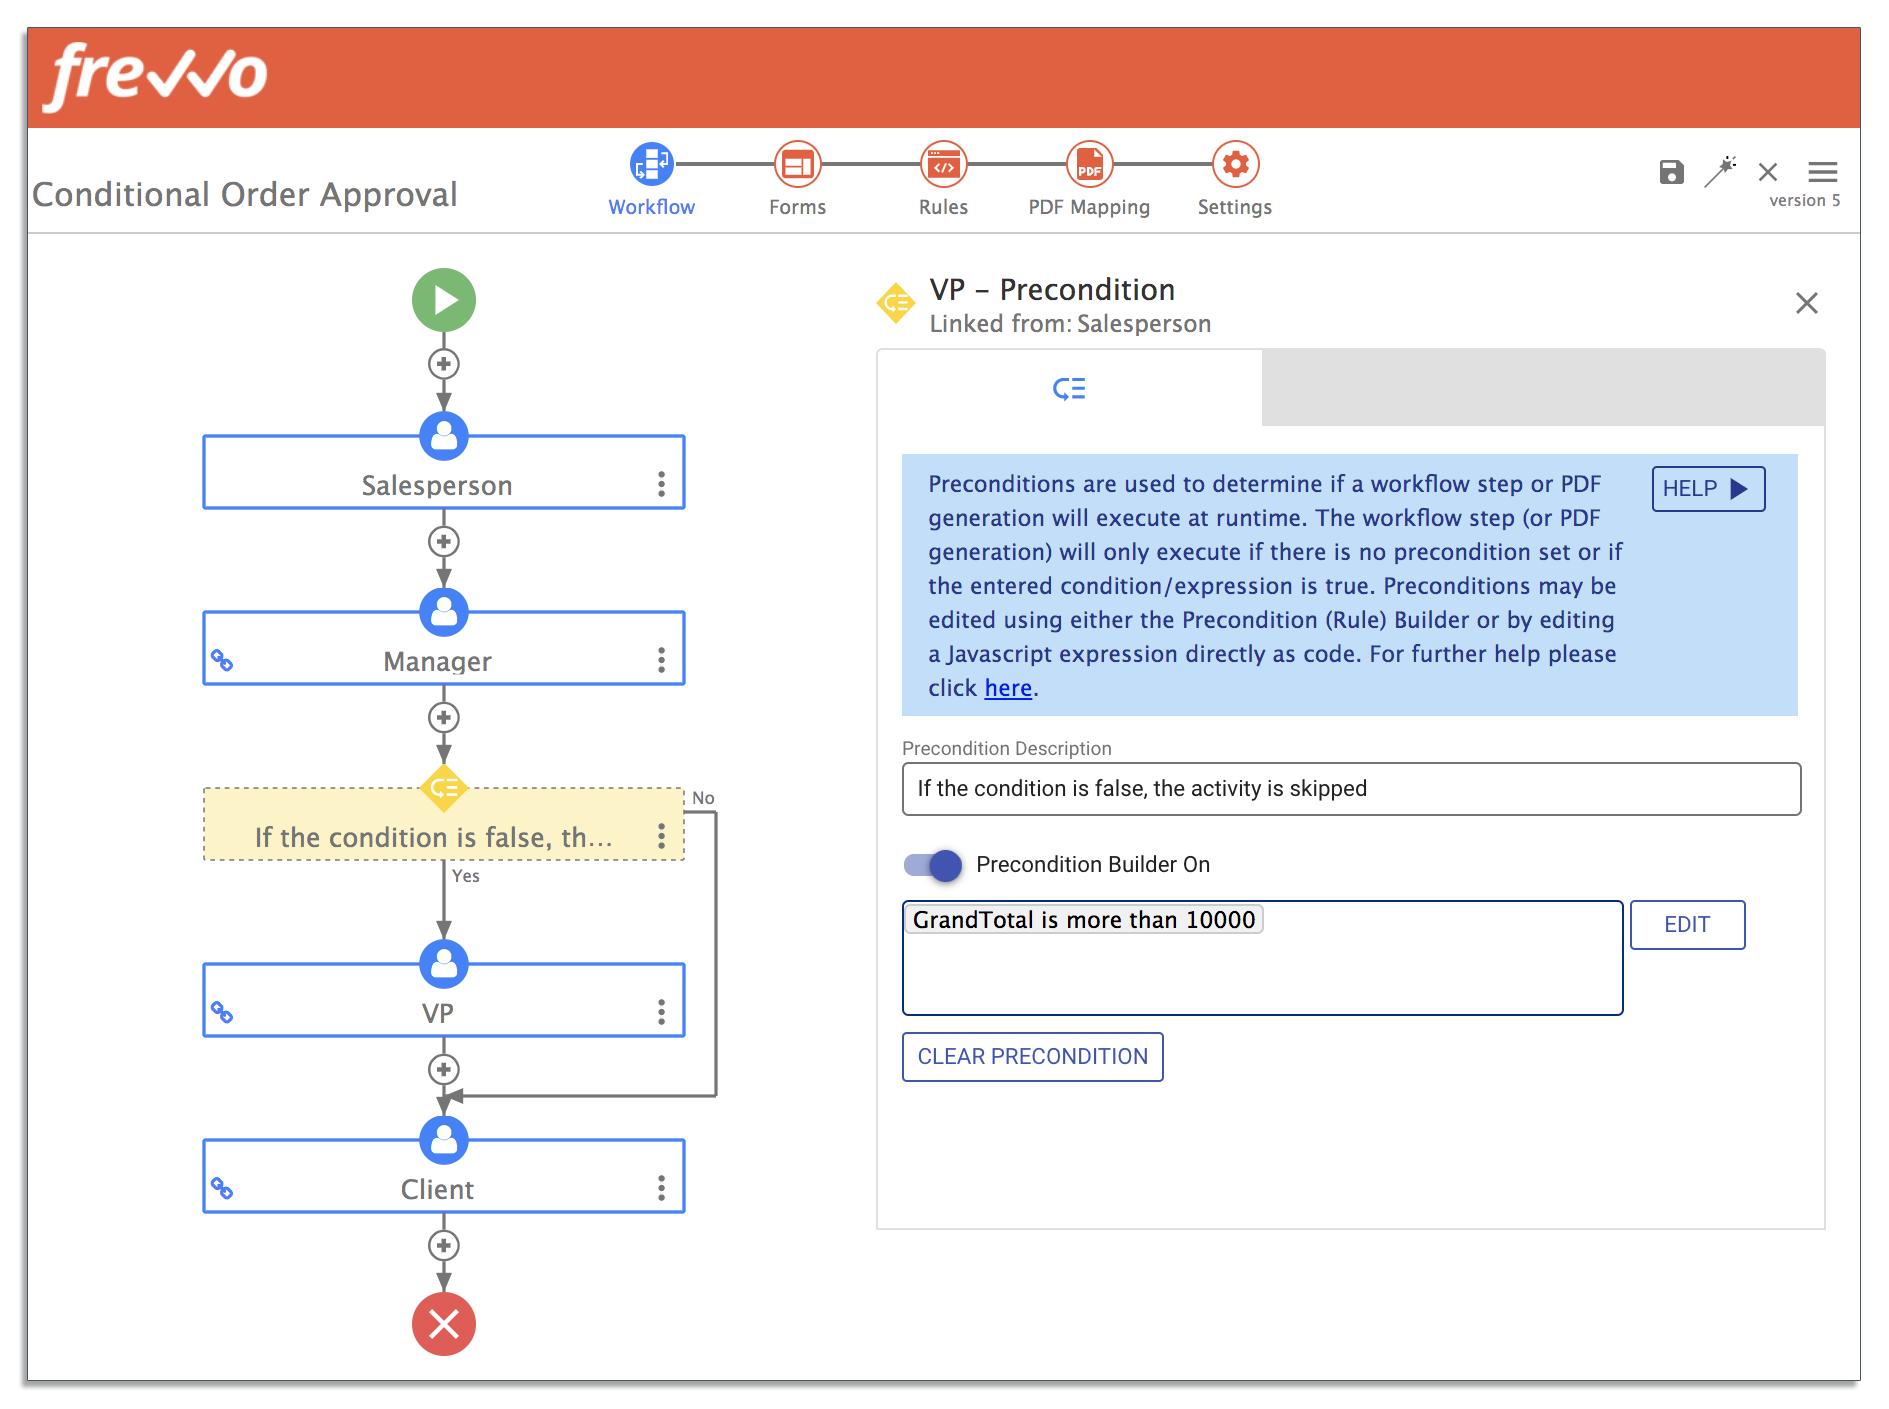 frevvo dashboard for a conditional order process